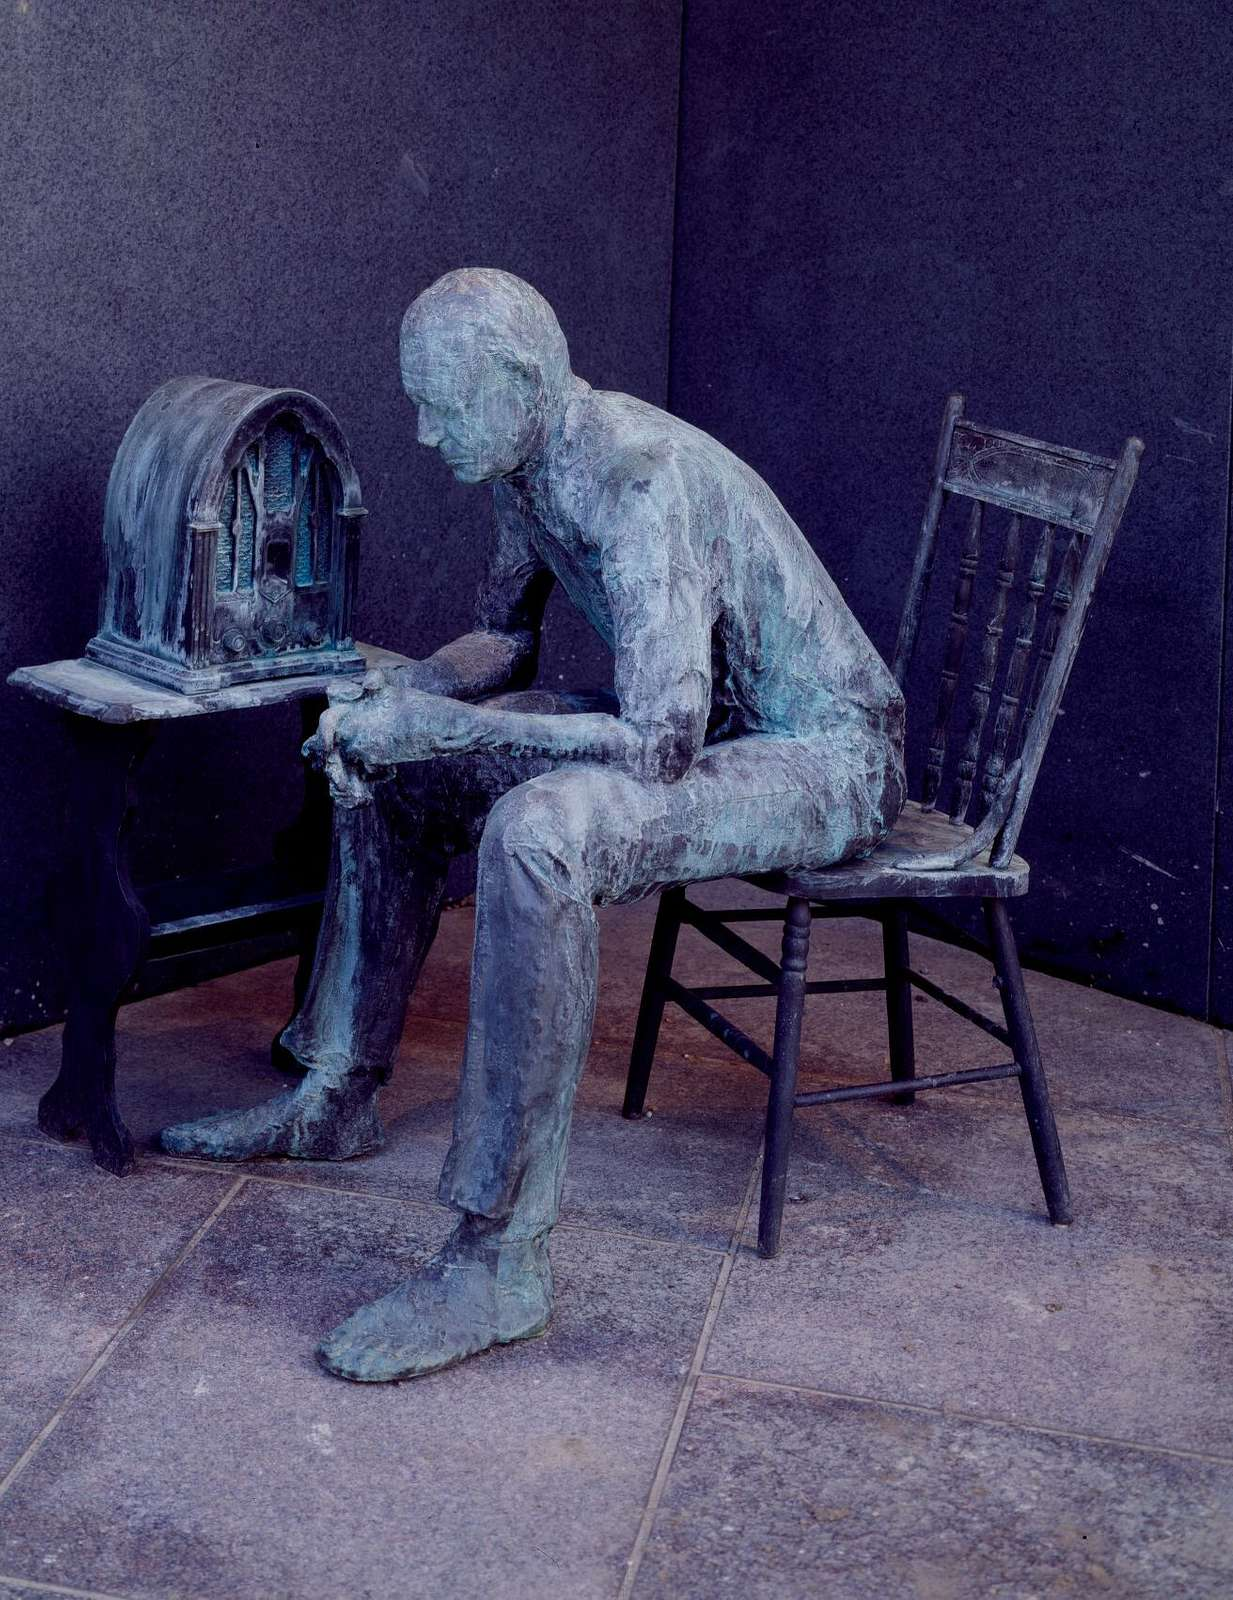 """Statue by George Segal of a citizen listening to one of President Roosevelt's """"fireside chats"""" at the Franklin Delano Roosevelt Memorial, Washington, D.C."""